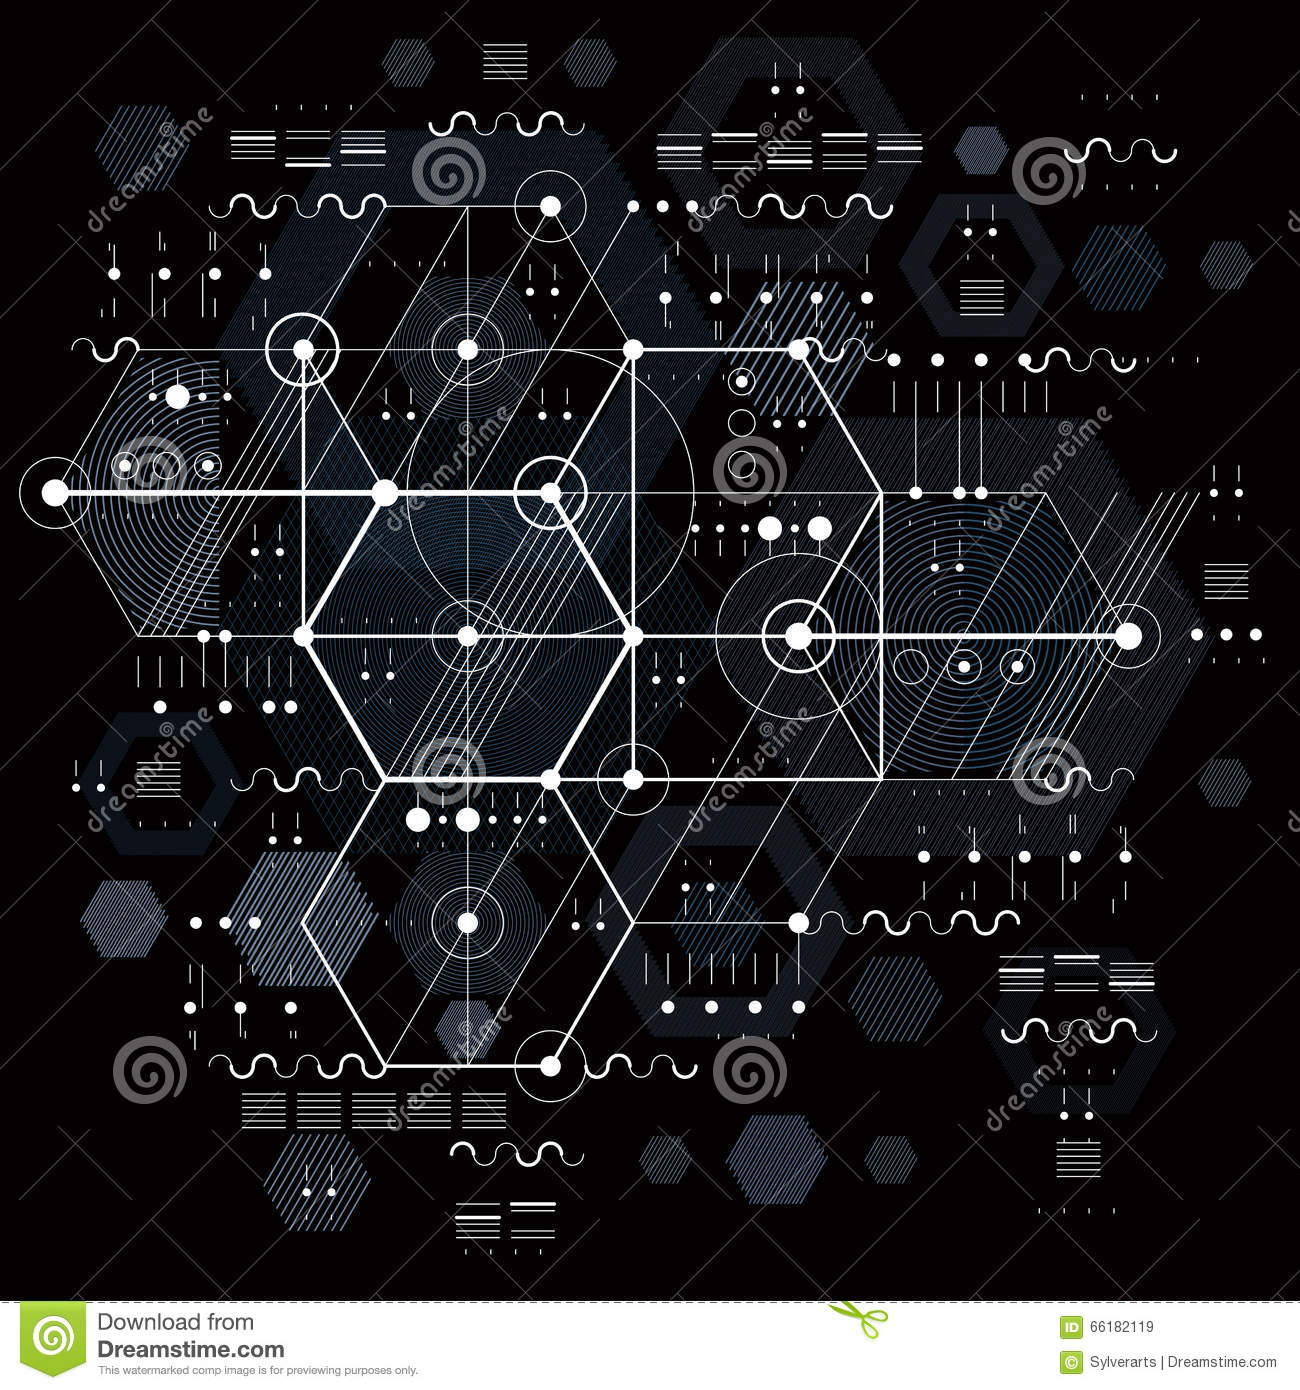 Stock Photo Abstract Hexagon Infographics Modern Vector Tag Infographic Elements Image38688660 besides Stock Illustration D Architect People Helmet Drawings Renderer Image Construction Concept Isolated White Background Image66808902 also Stock Illustration Physics Science School Blueprint Vector Illustration Elements Best Education Research Technology Concept Image60736331 additionally Architectural Background With A 3d Building Model Vector Clip Art Vector 4536253 additionally Stock Photos Engineering Blueprint Image19335703. on stock illustration architecture blueprint background vector